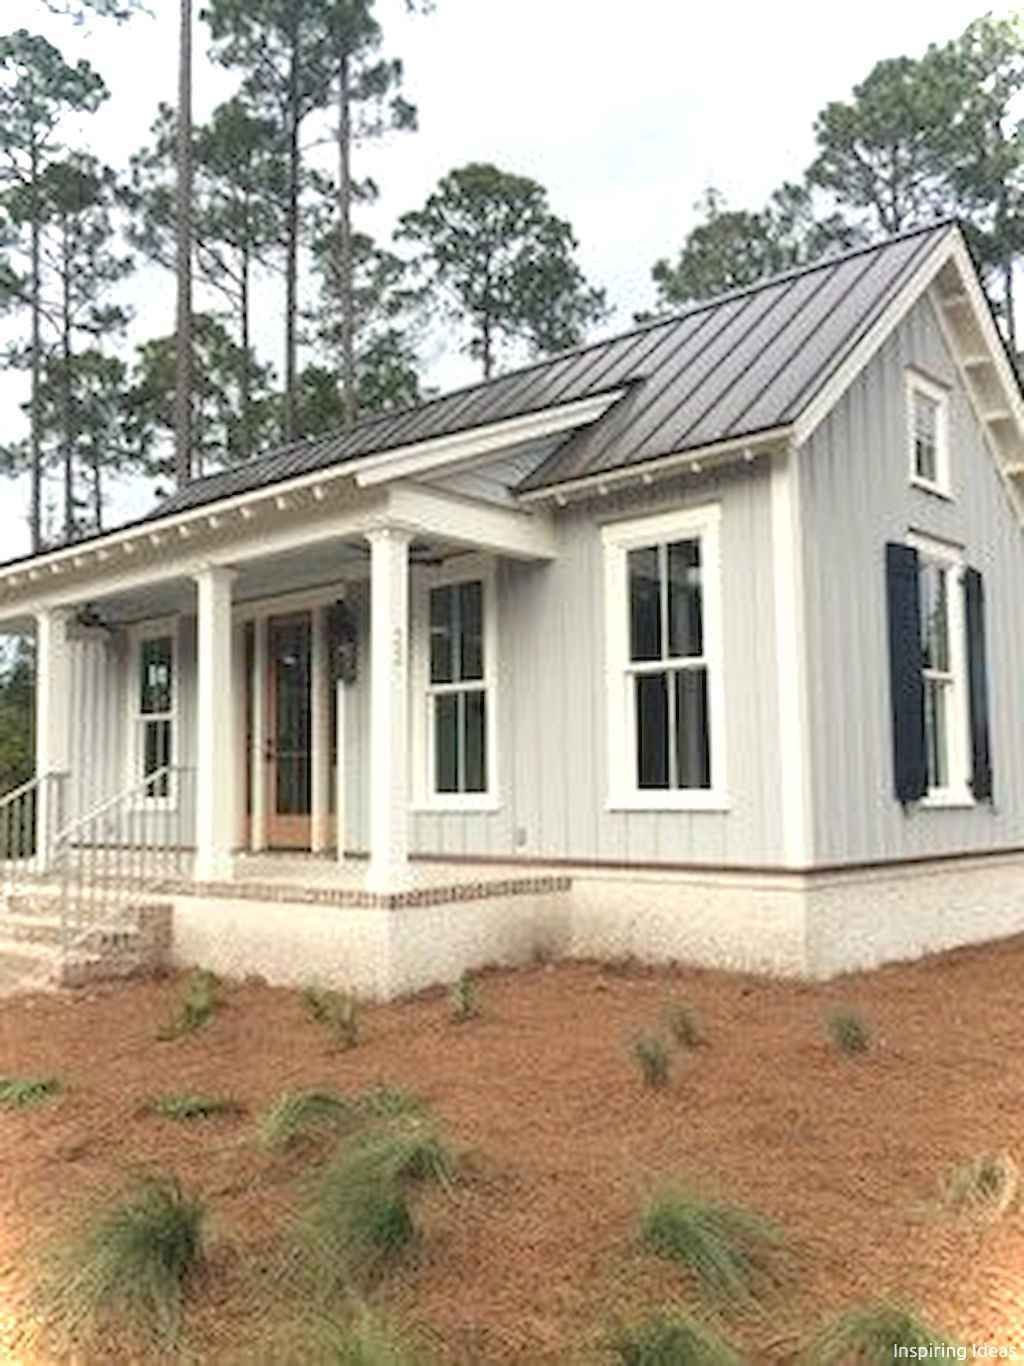 27 Modern Farmhouse Exterior Design Ideas For Stylish But Simple Look Ruang Harga Cottage House Exterior Cottage House Plans Modern Farmhouse Exterior